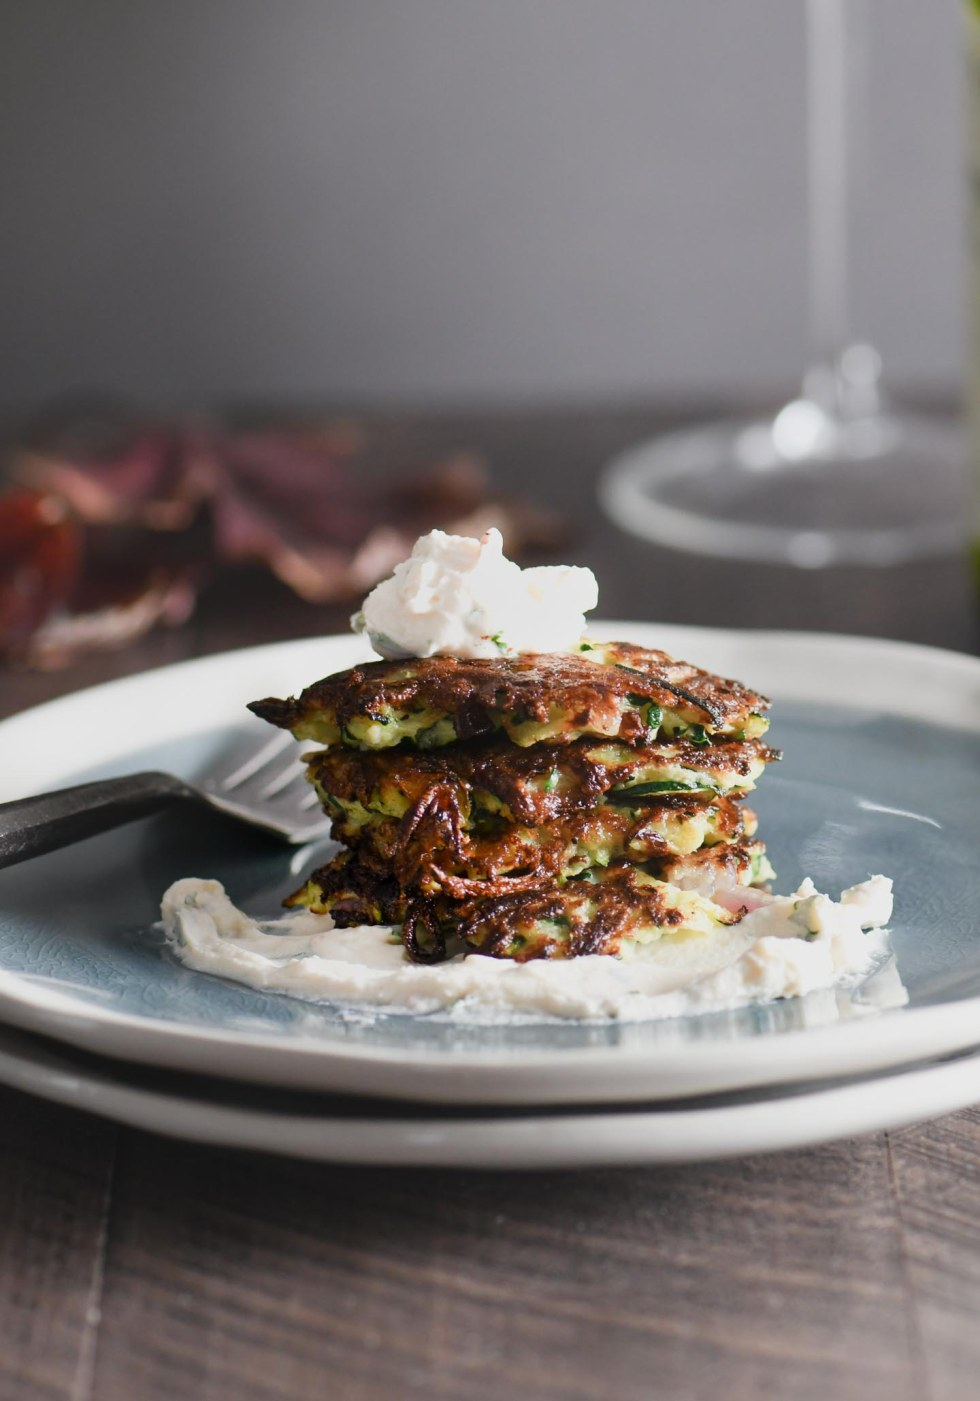 These crispy zucchini fritters are super easy to make and are the perfect way to sneak some tasty veggies into your meal!